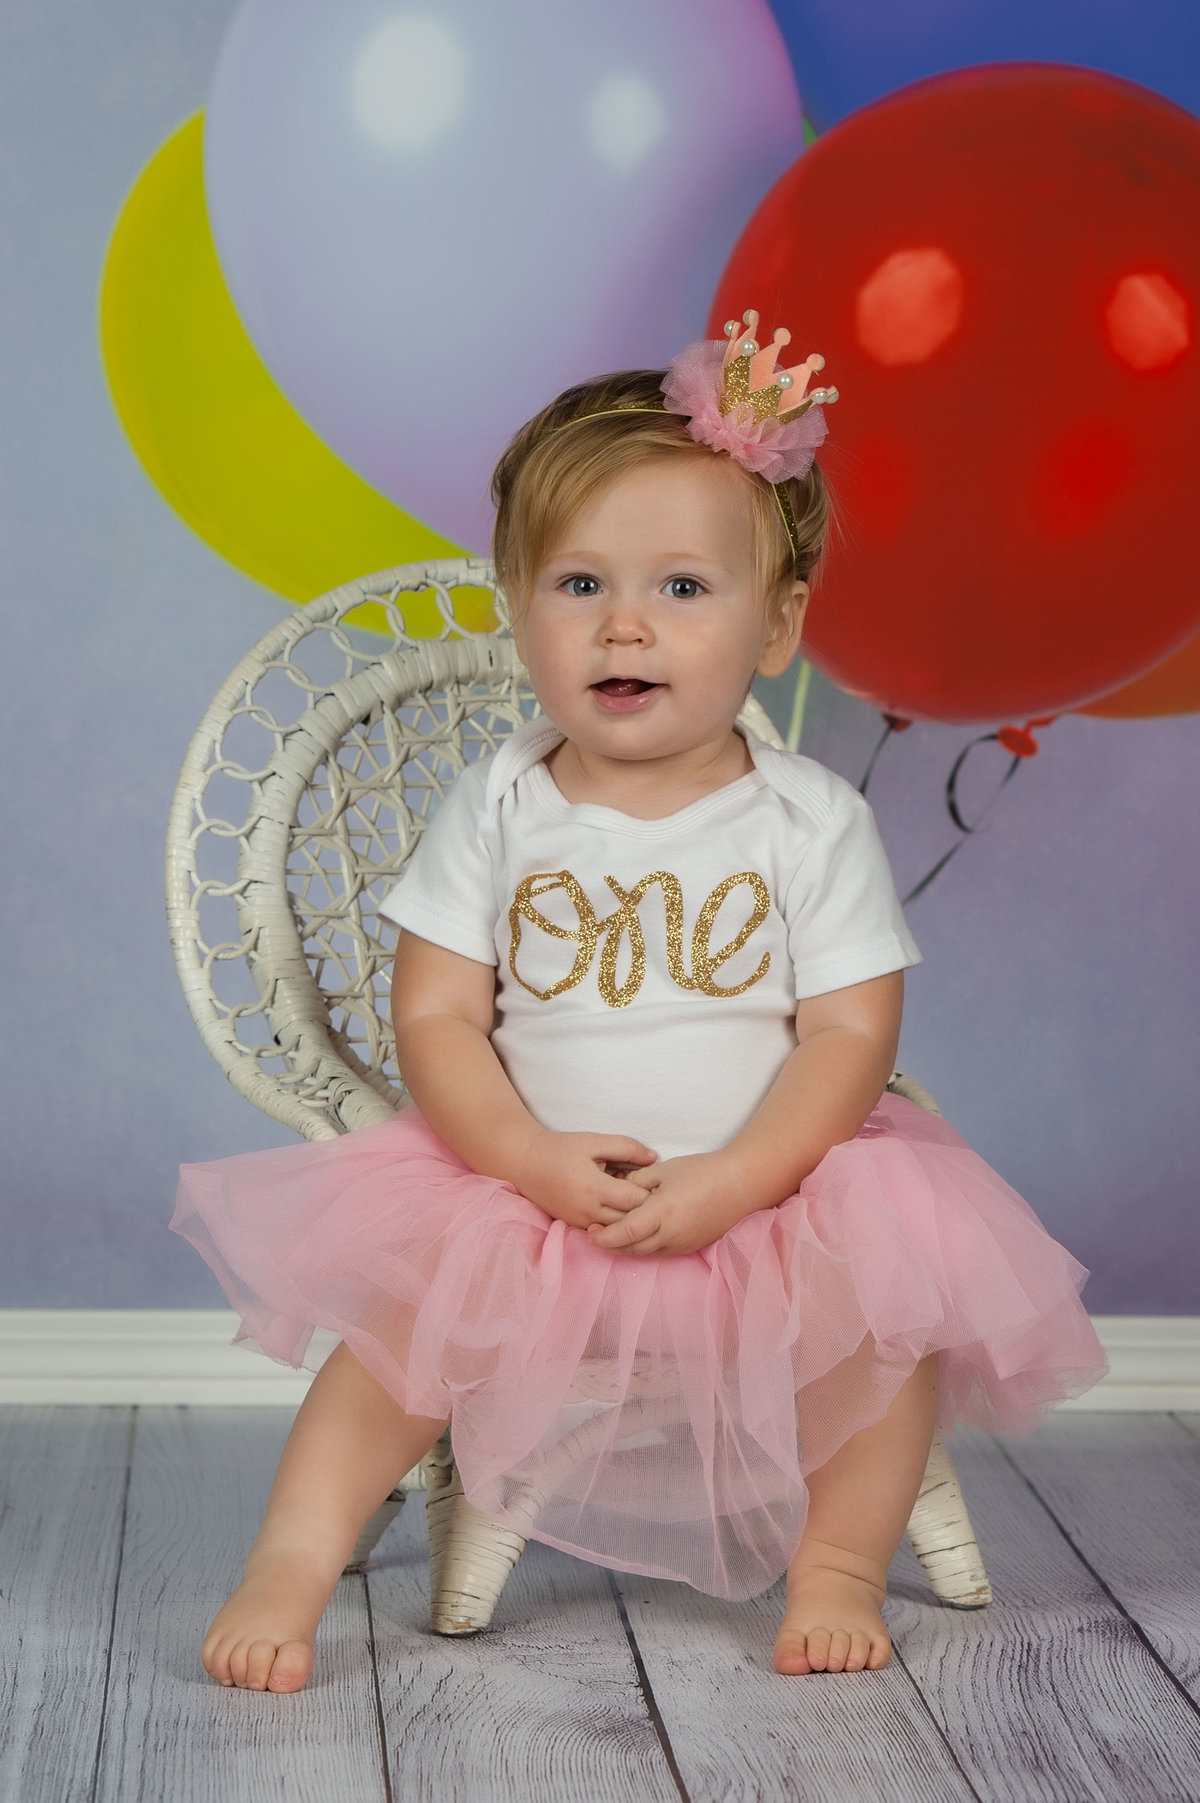 baby in studio on balloon backdrop